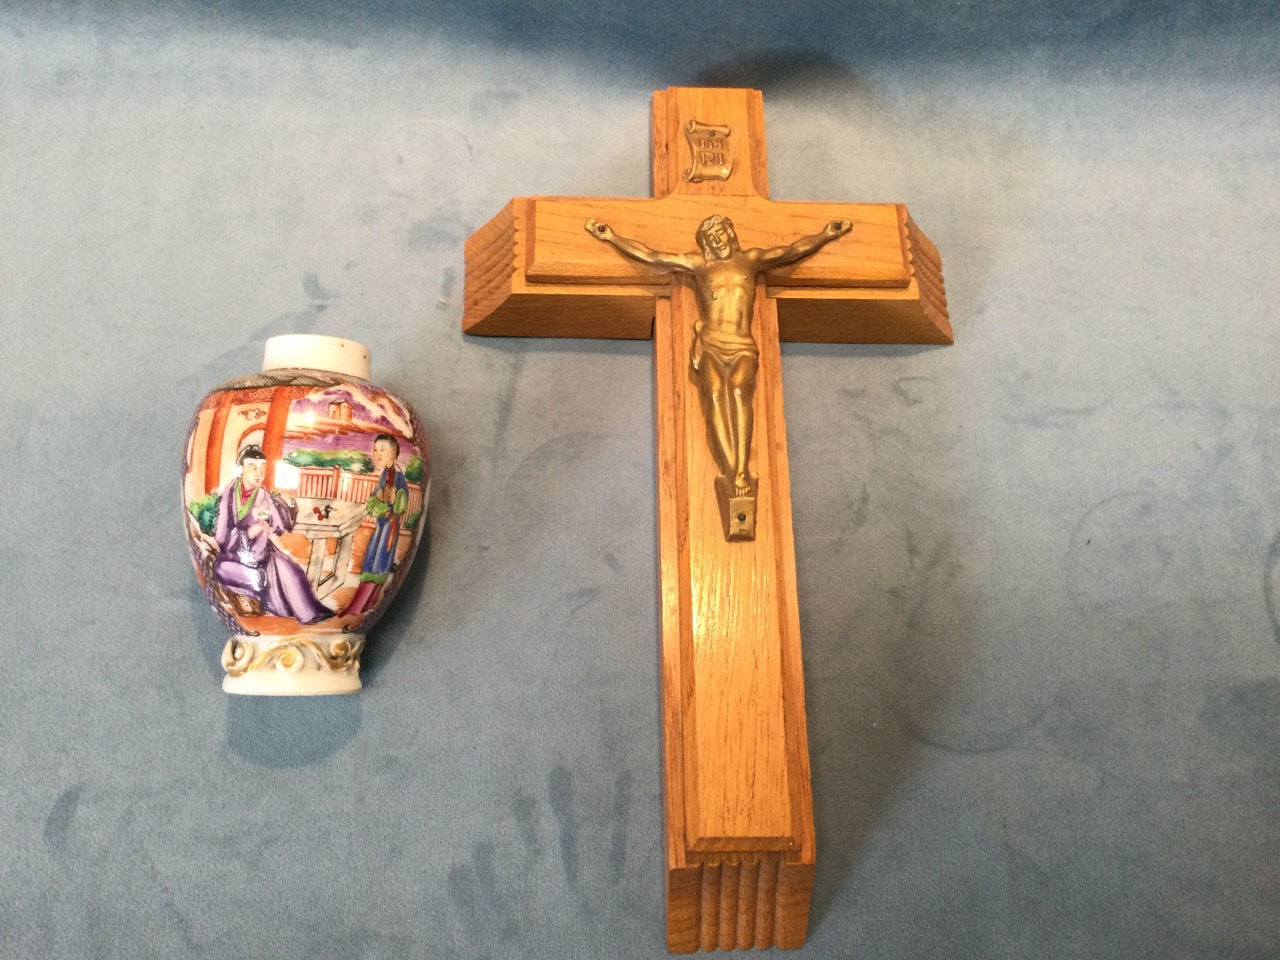 An oak absolution crucifix with sliding case revealing holy water bottle, and a pair of candles to - Image 2 of 3